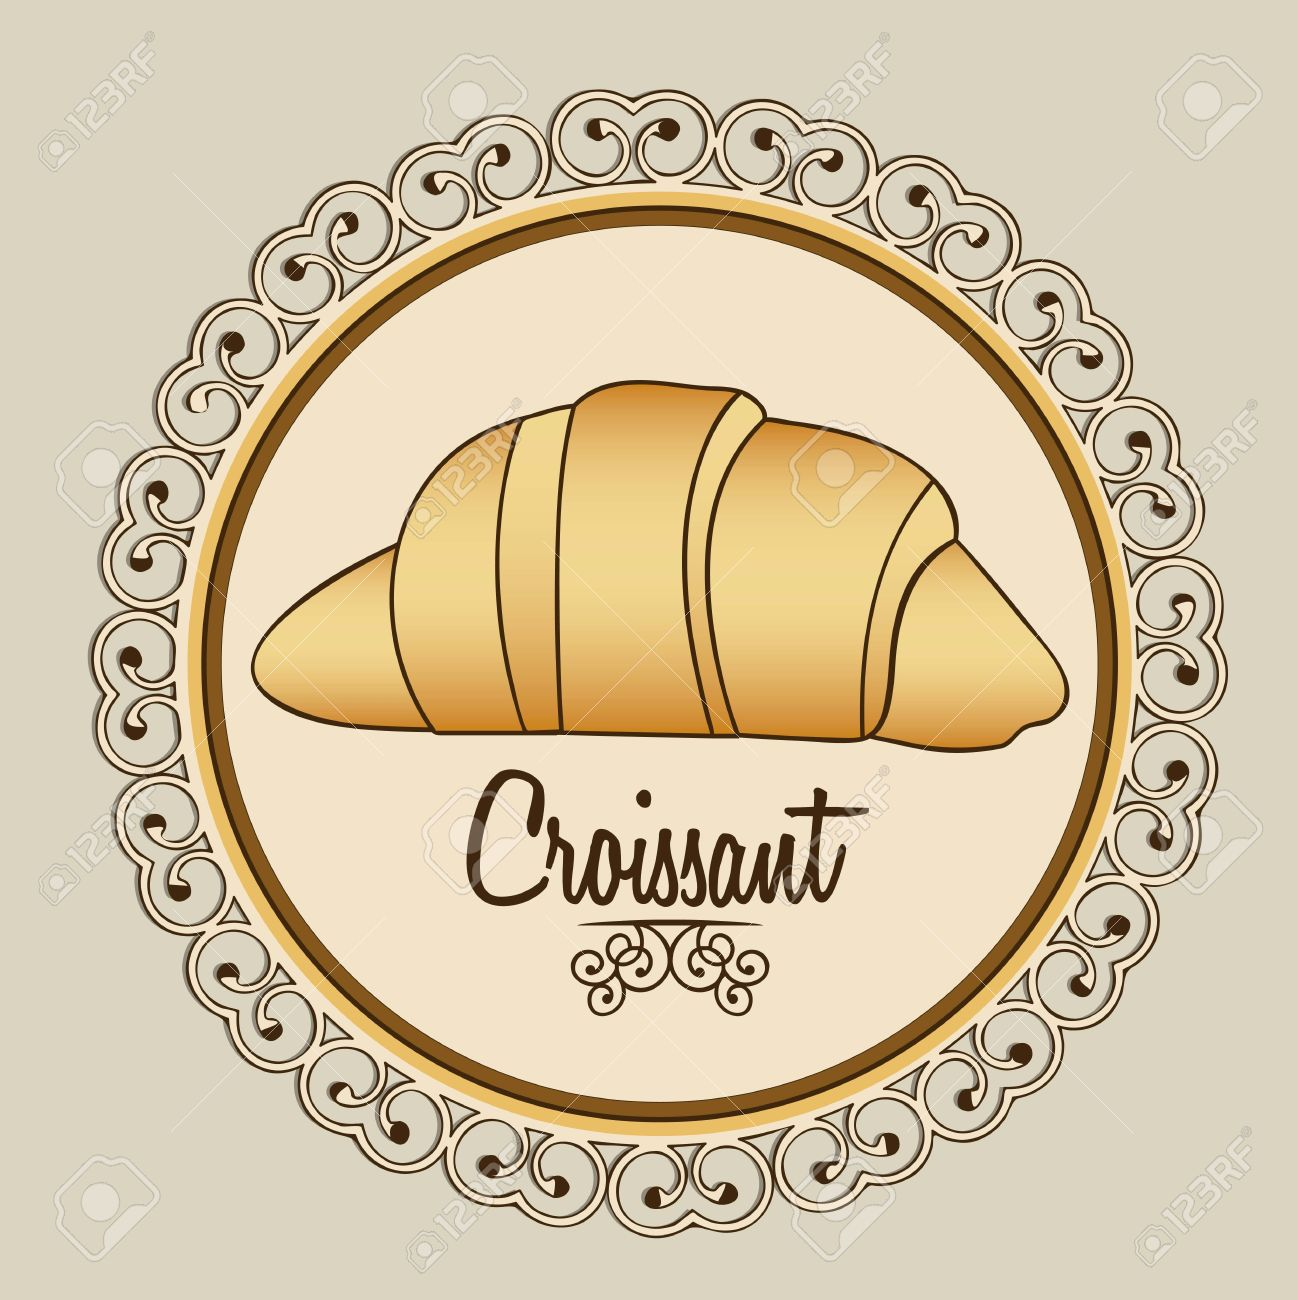 Illustration of croissant and food, bakery icon, vector illustration Stock Vector - 17002642